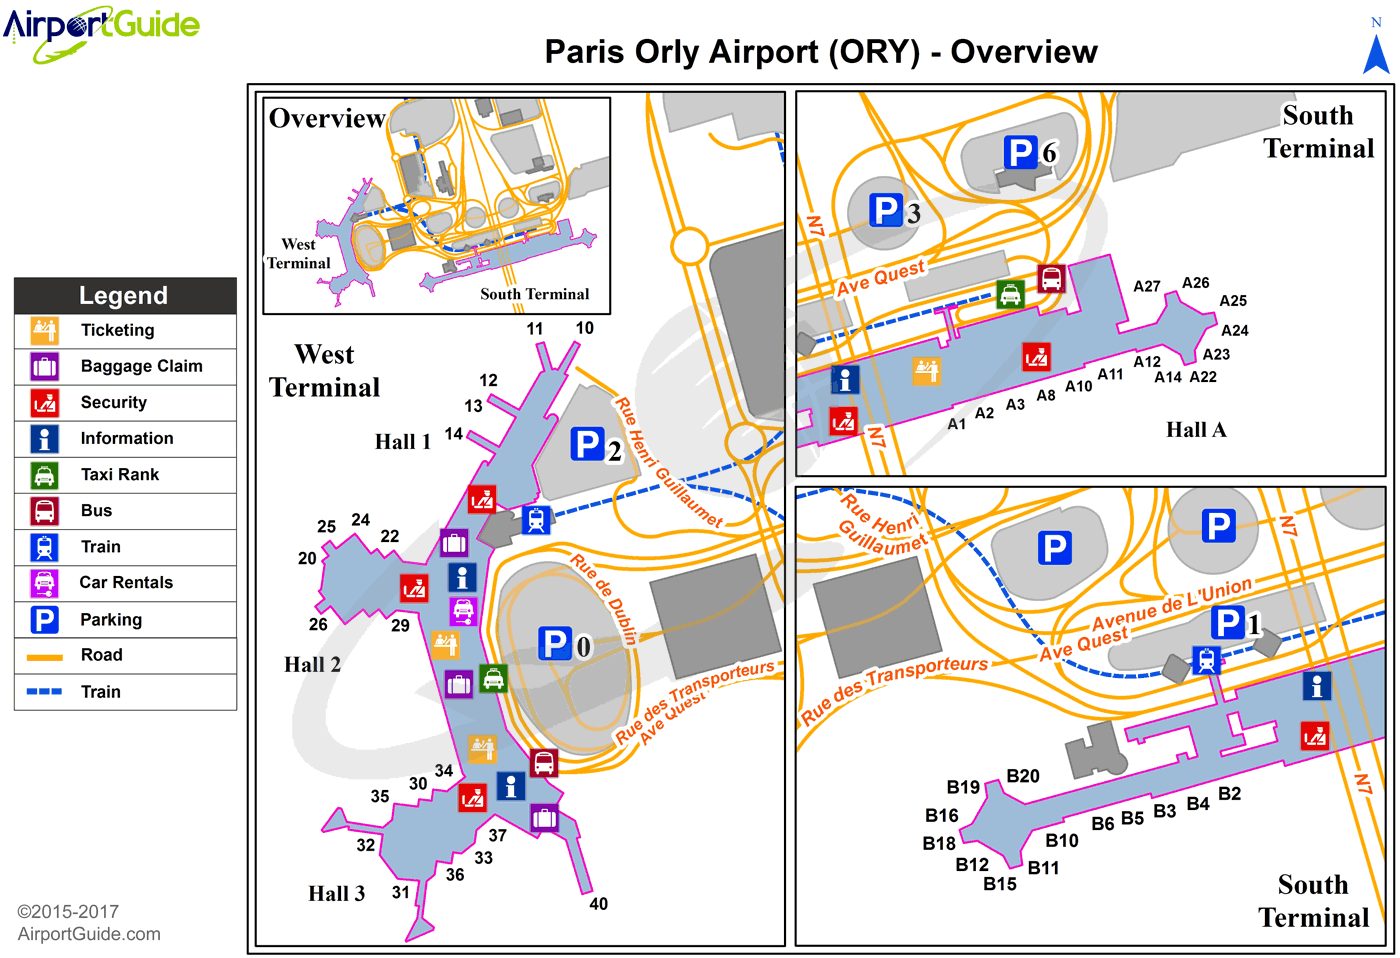 Orly Airport Map Paris   Paris Orly (ORY) Airport Terminal Maps   TravelWidget.com